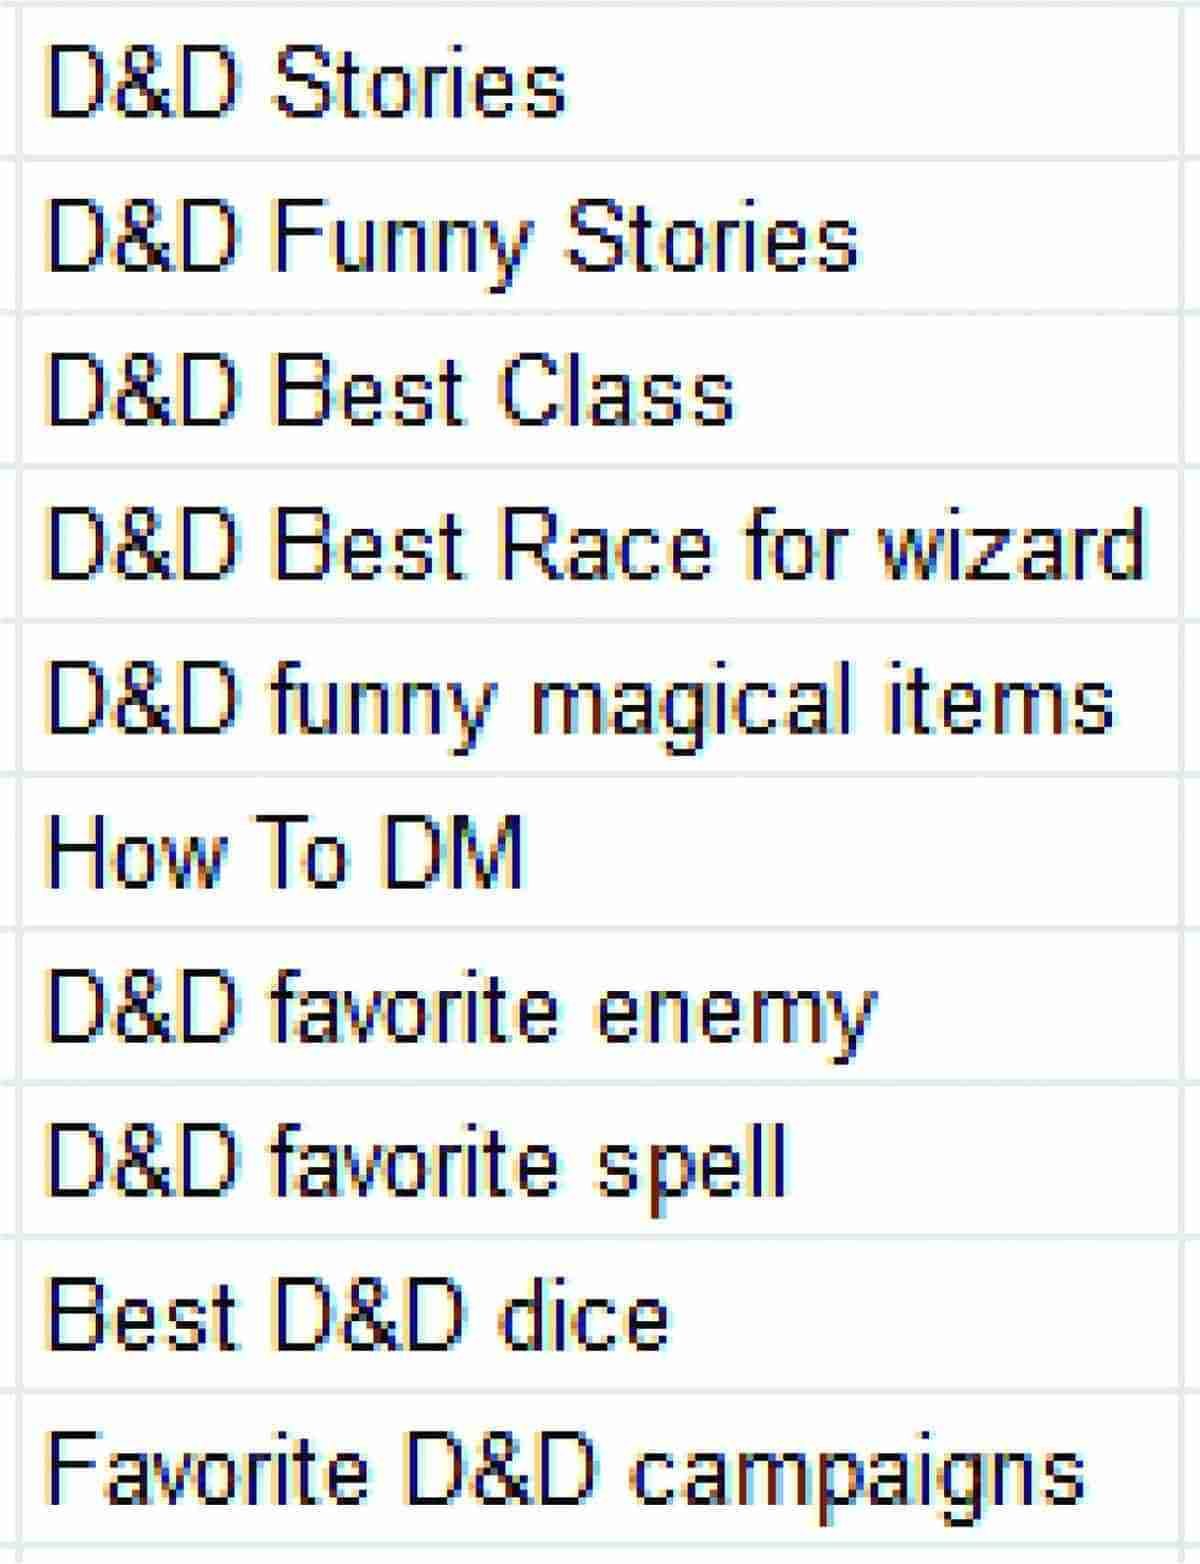 List of D&D topics